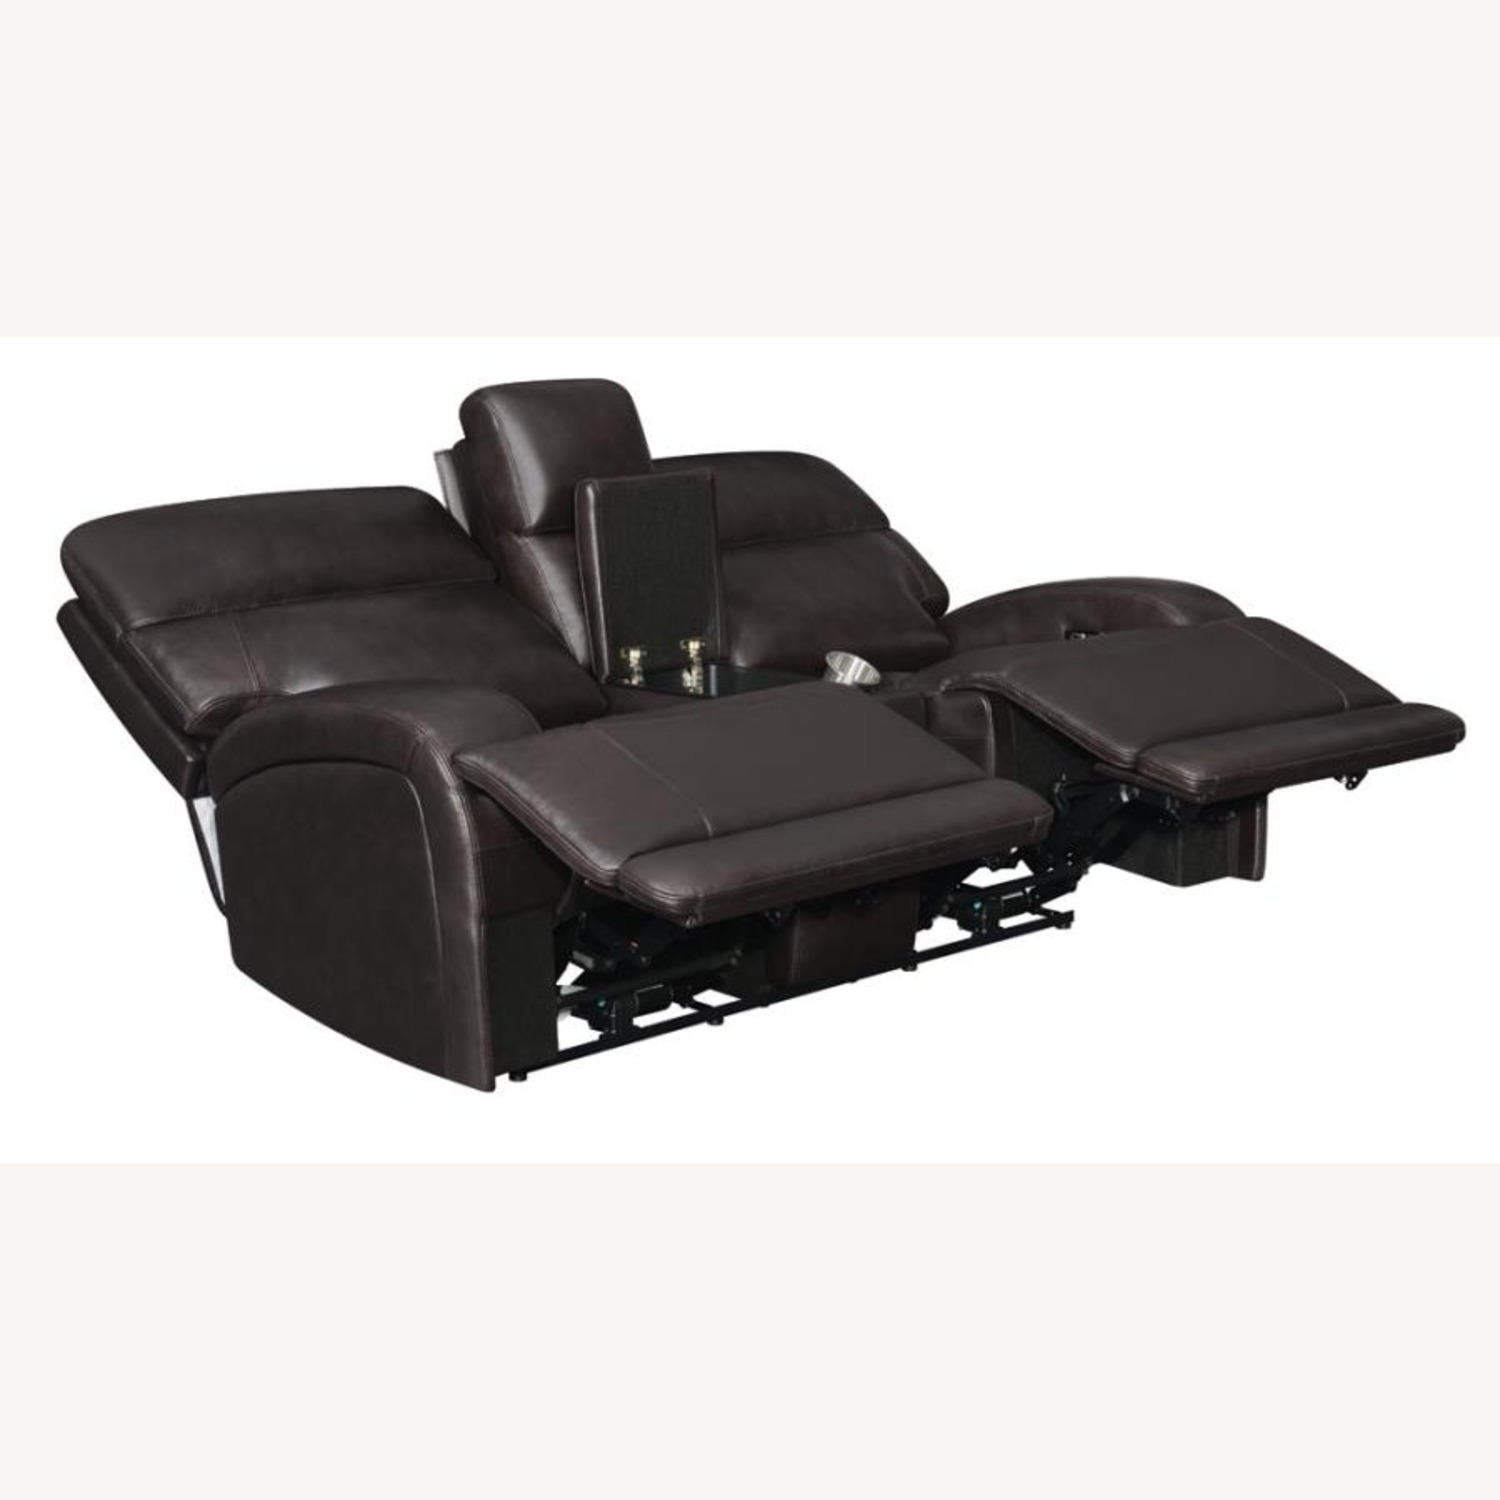 Power Loveseat W/ Console In Dark Brown Leather - image-1